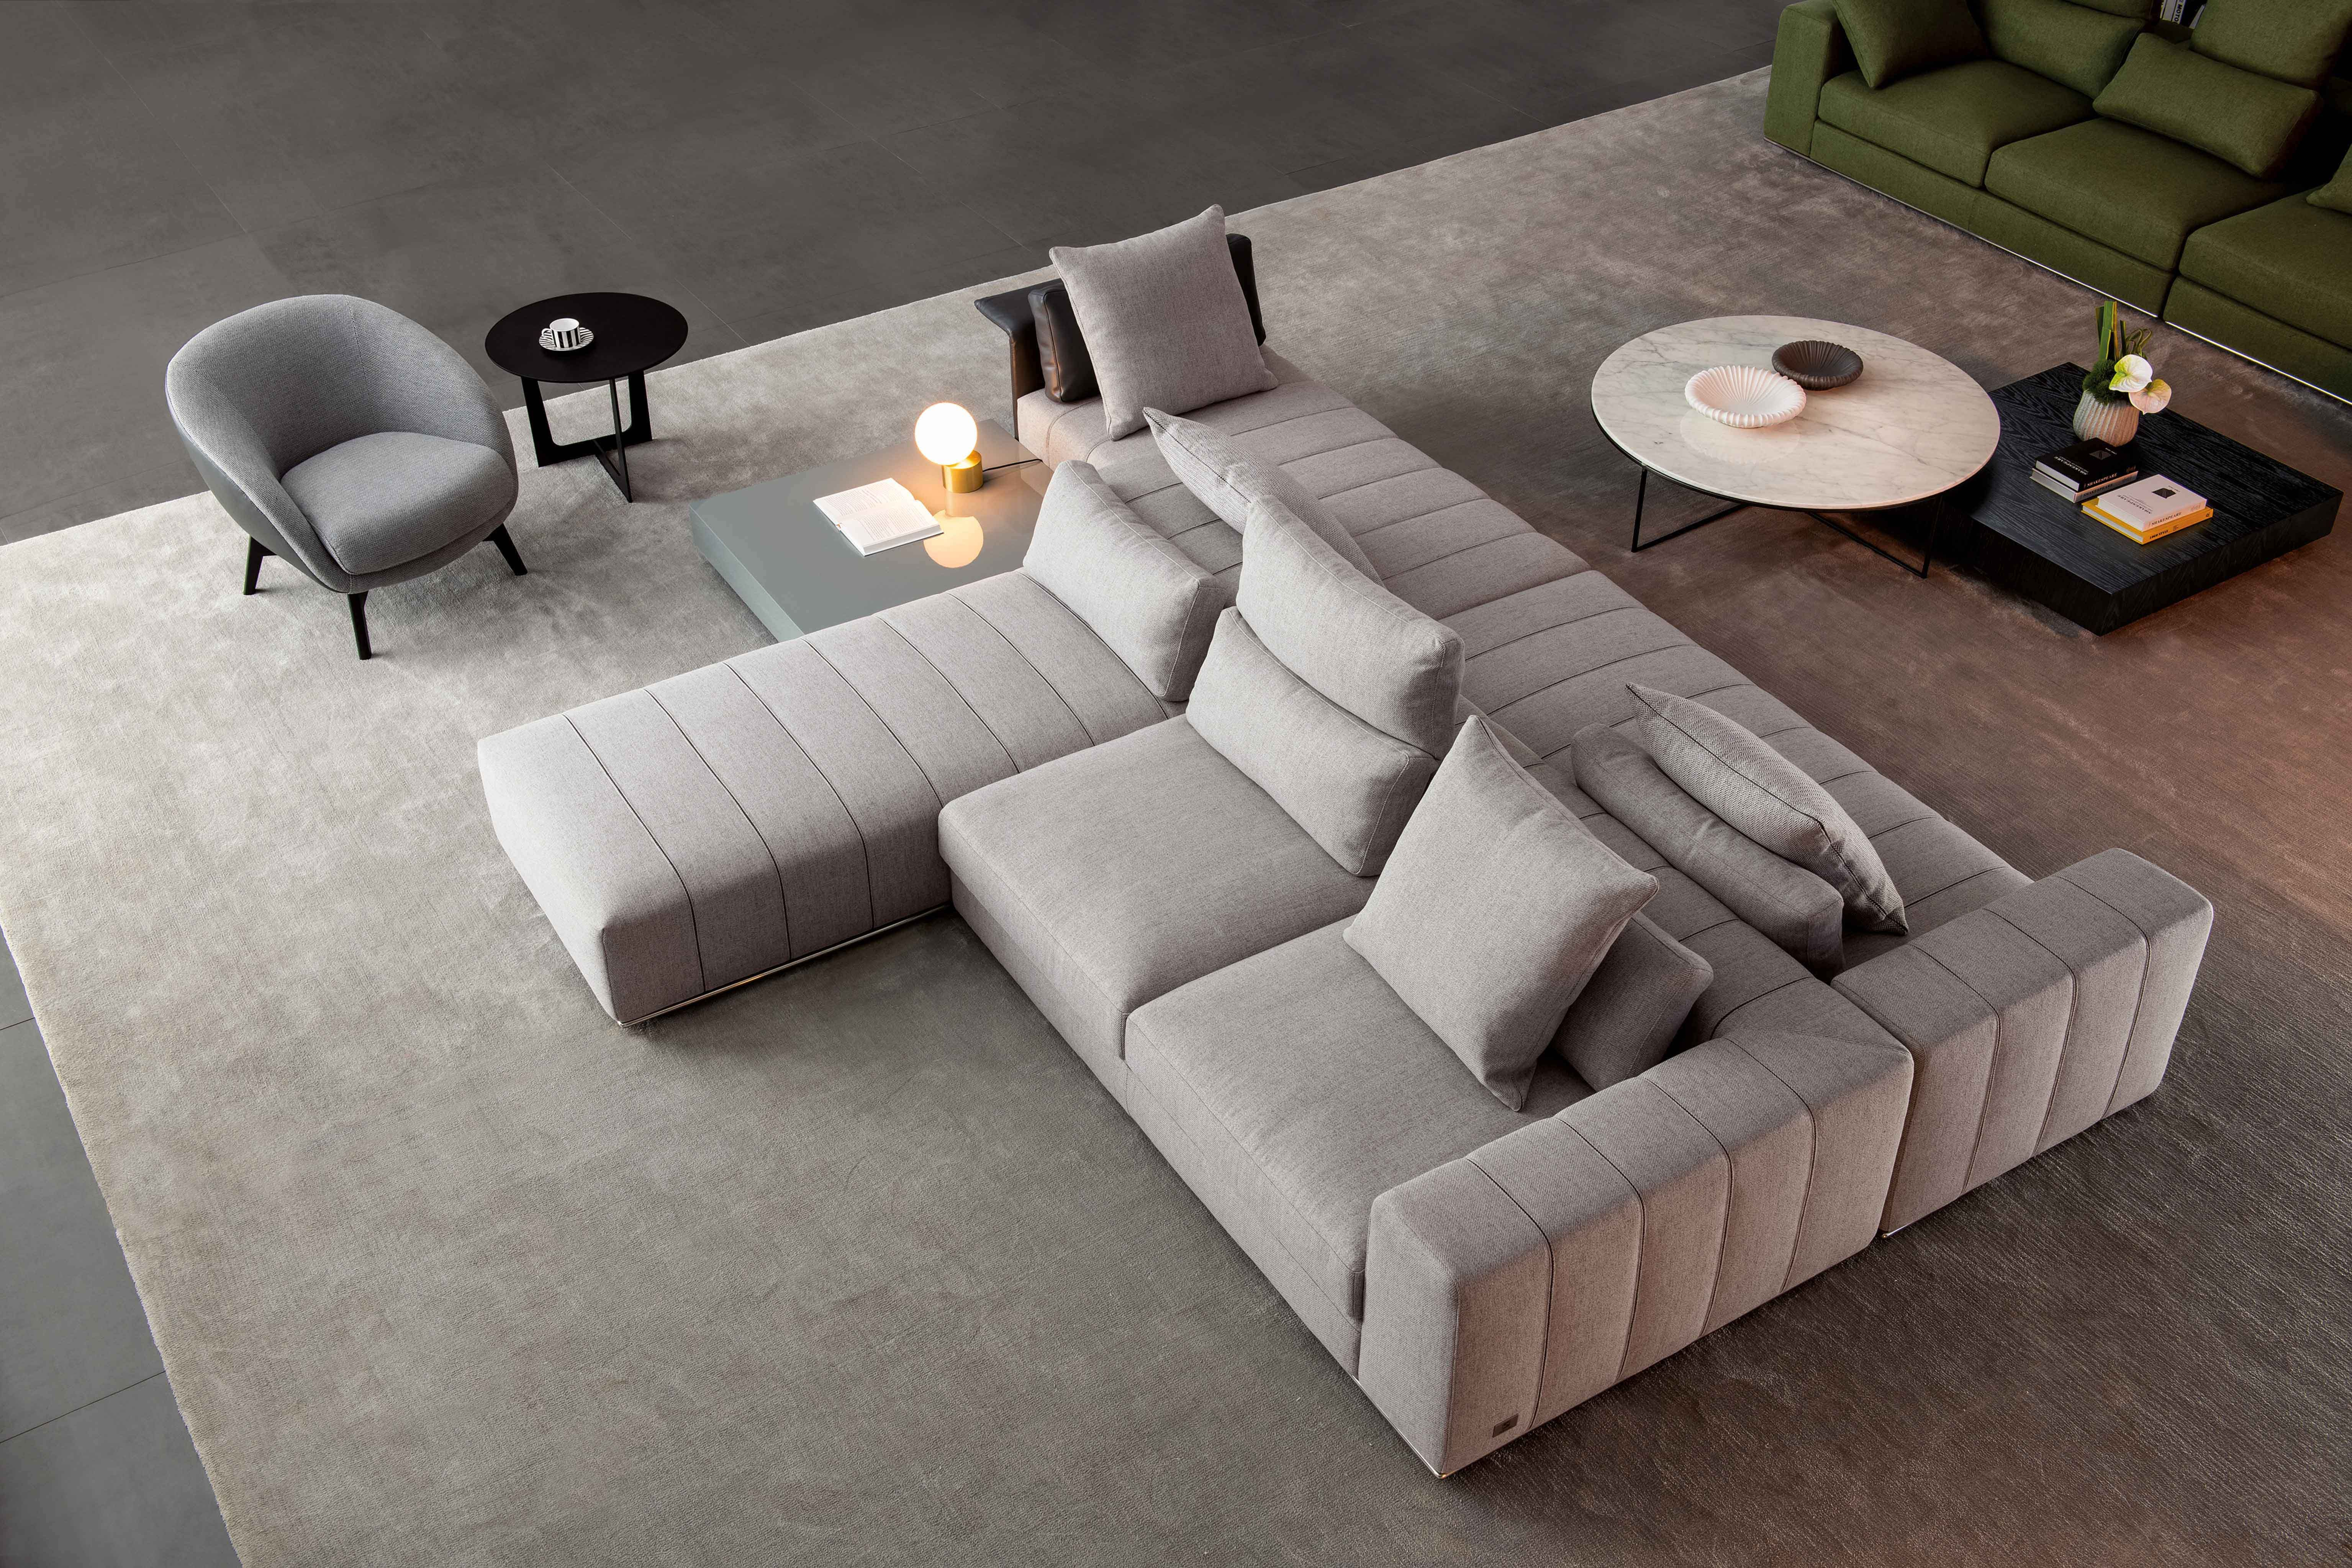 Plunge In The Ultimate Comfort Of Living Room Seating With Freeman Luxury Sofa Now In India In 2020 Luxury Sofa Living Room Sofa Set Italian Sofa Set